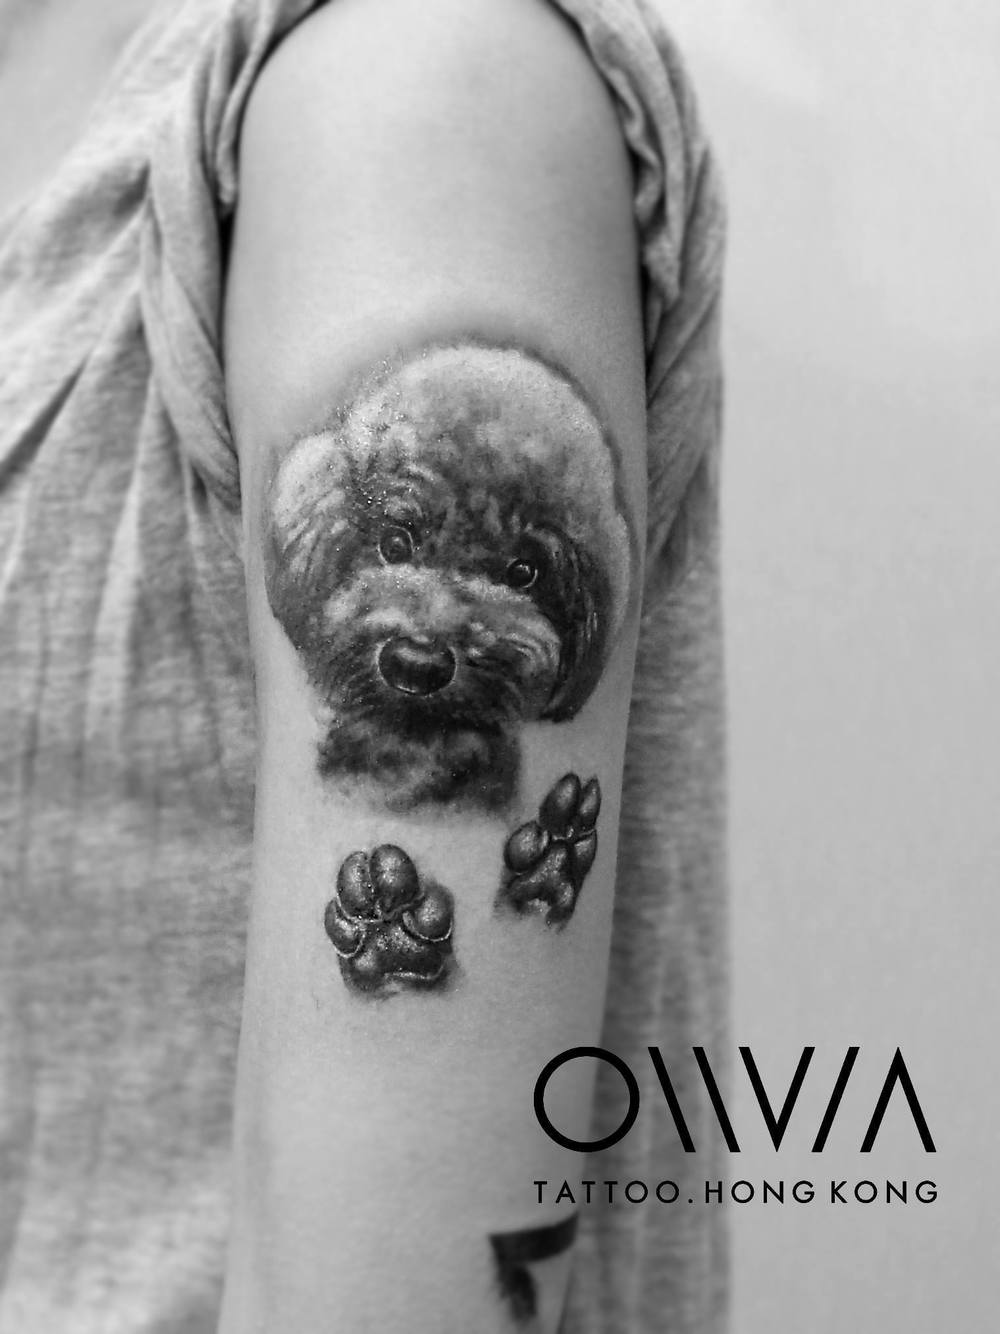 2016-fridays-tattoo-hong-kong-olivia-realistic-dog.jpg